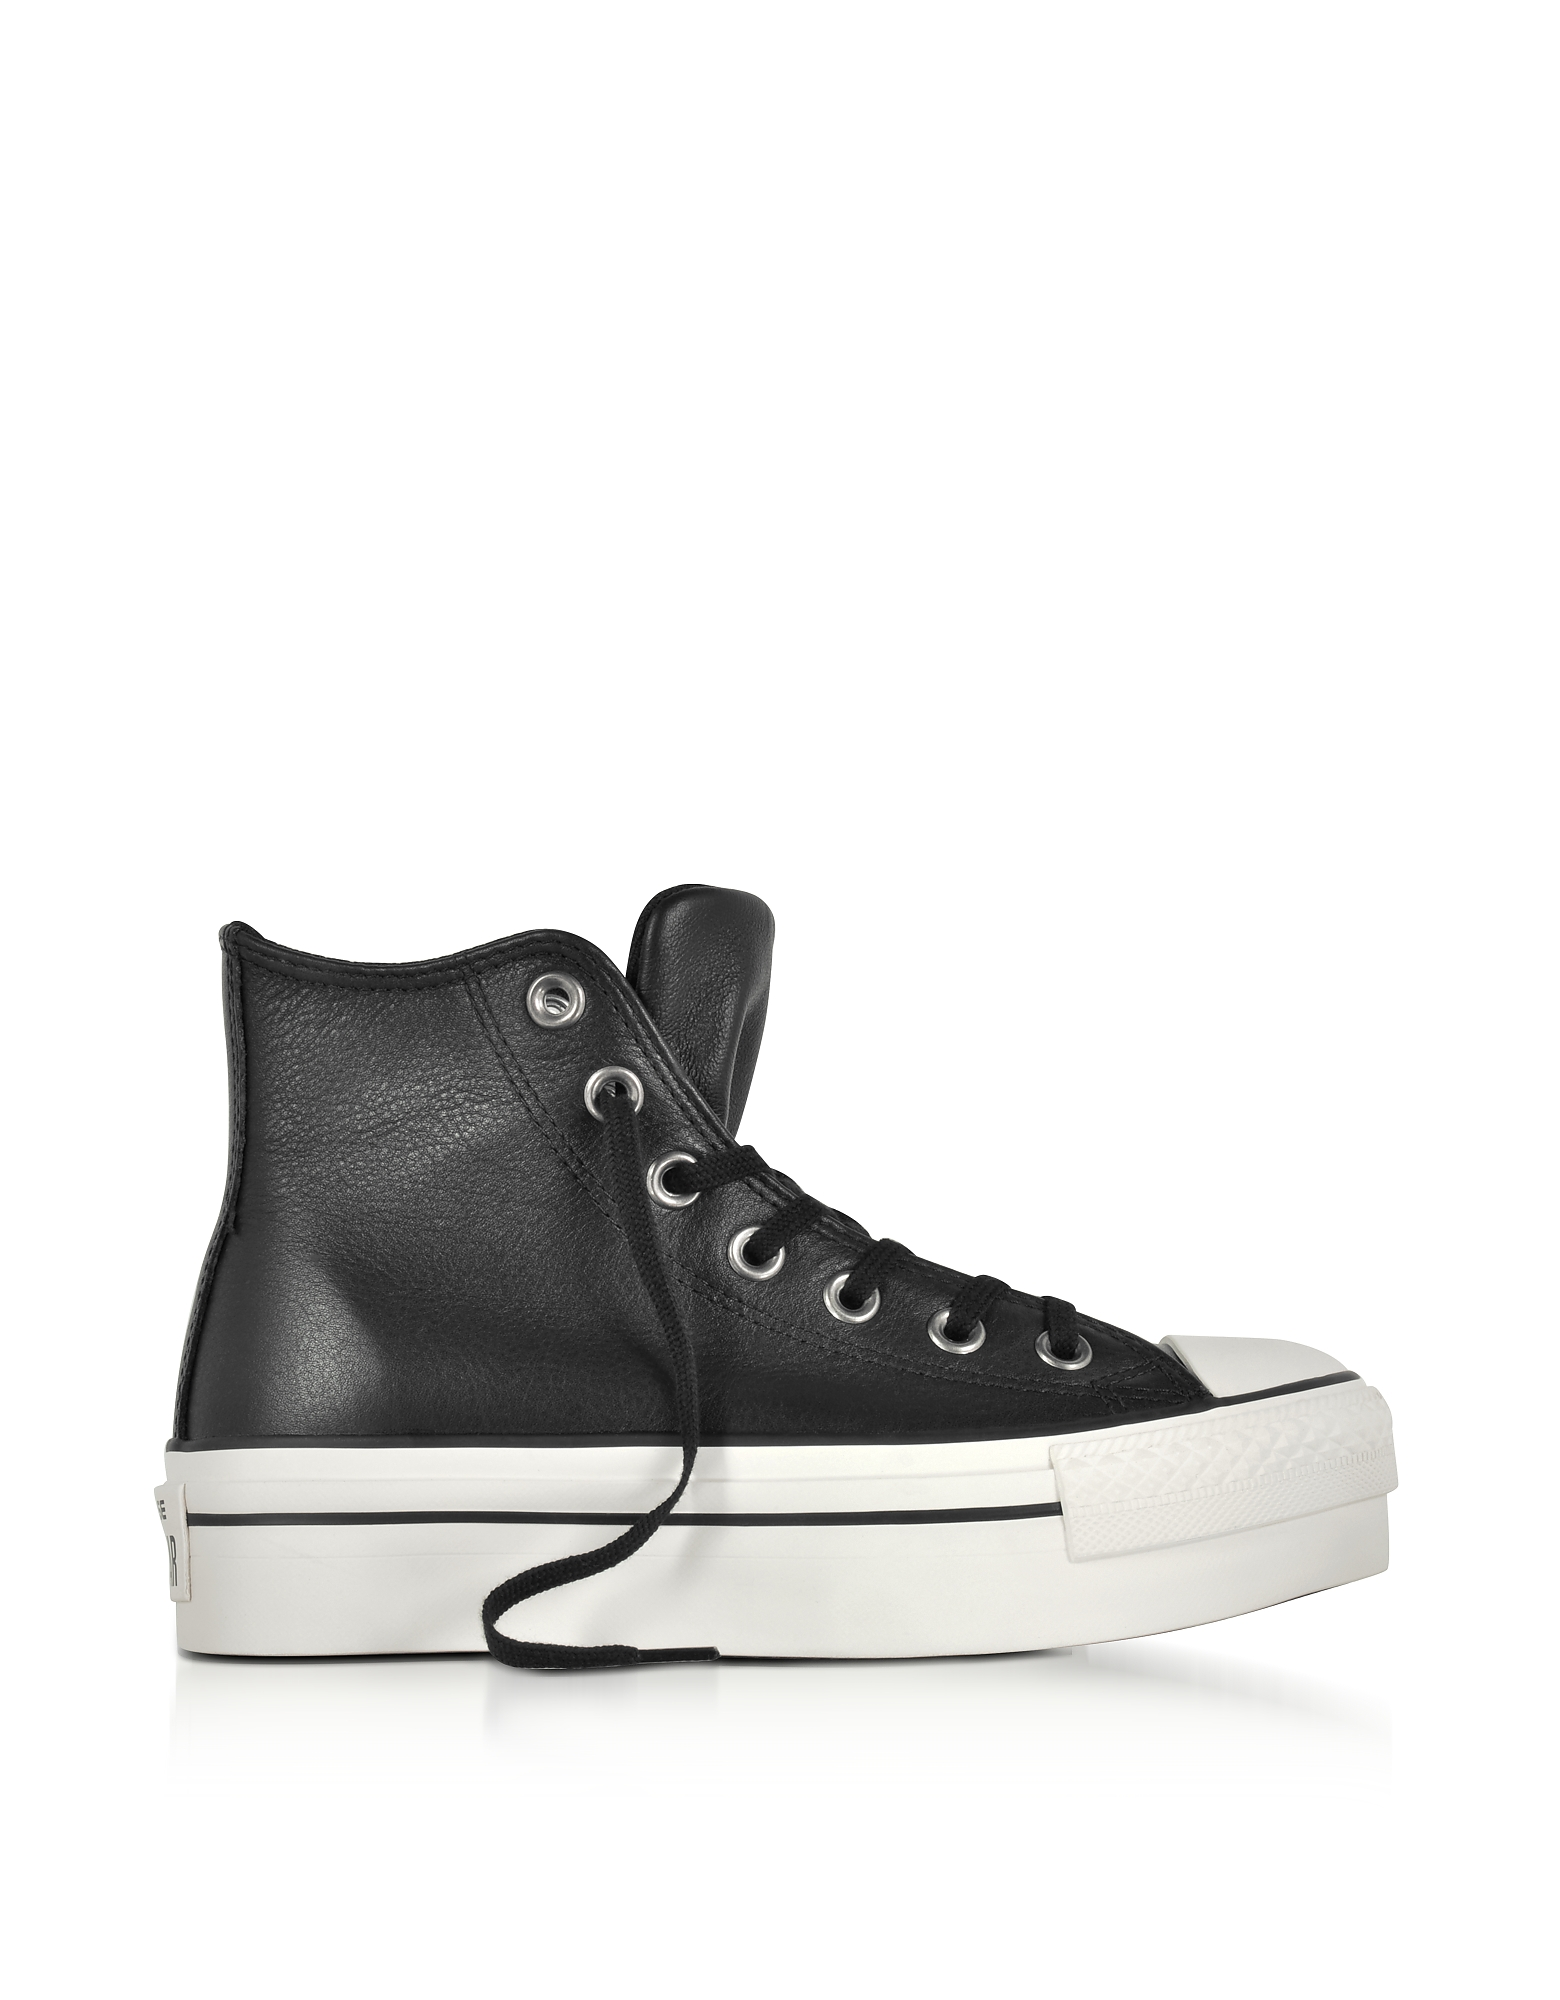 Converse Limited Edition Shoes, Chuck Taylor All Star High Black Leather Flatform Sneakers